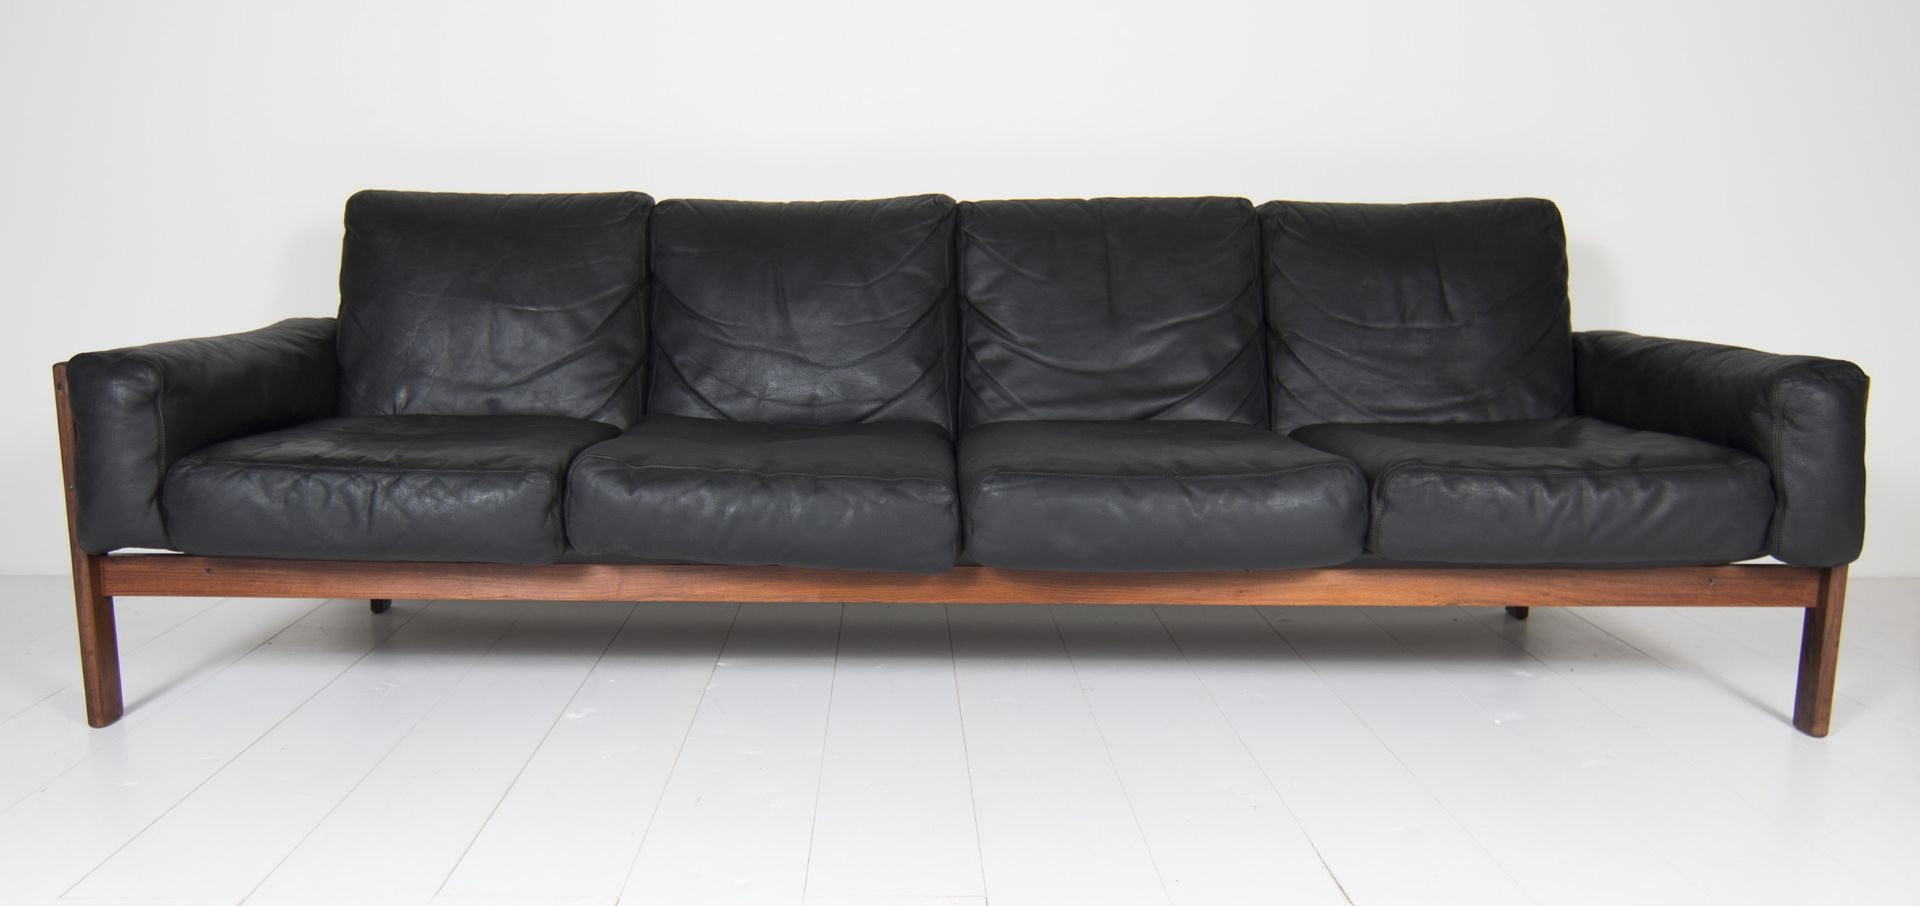 4 seater leather sofa prices cane sofas bangalore four black by sven ivar dysthe for